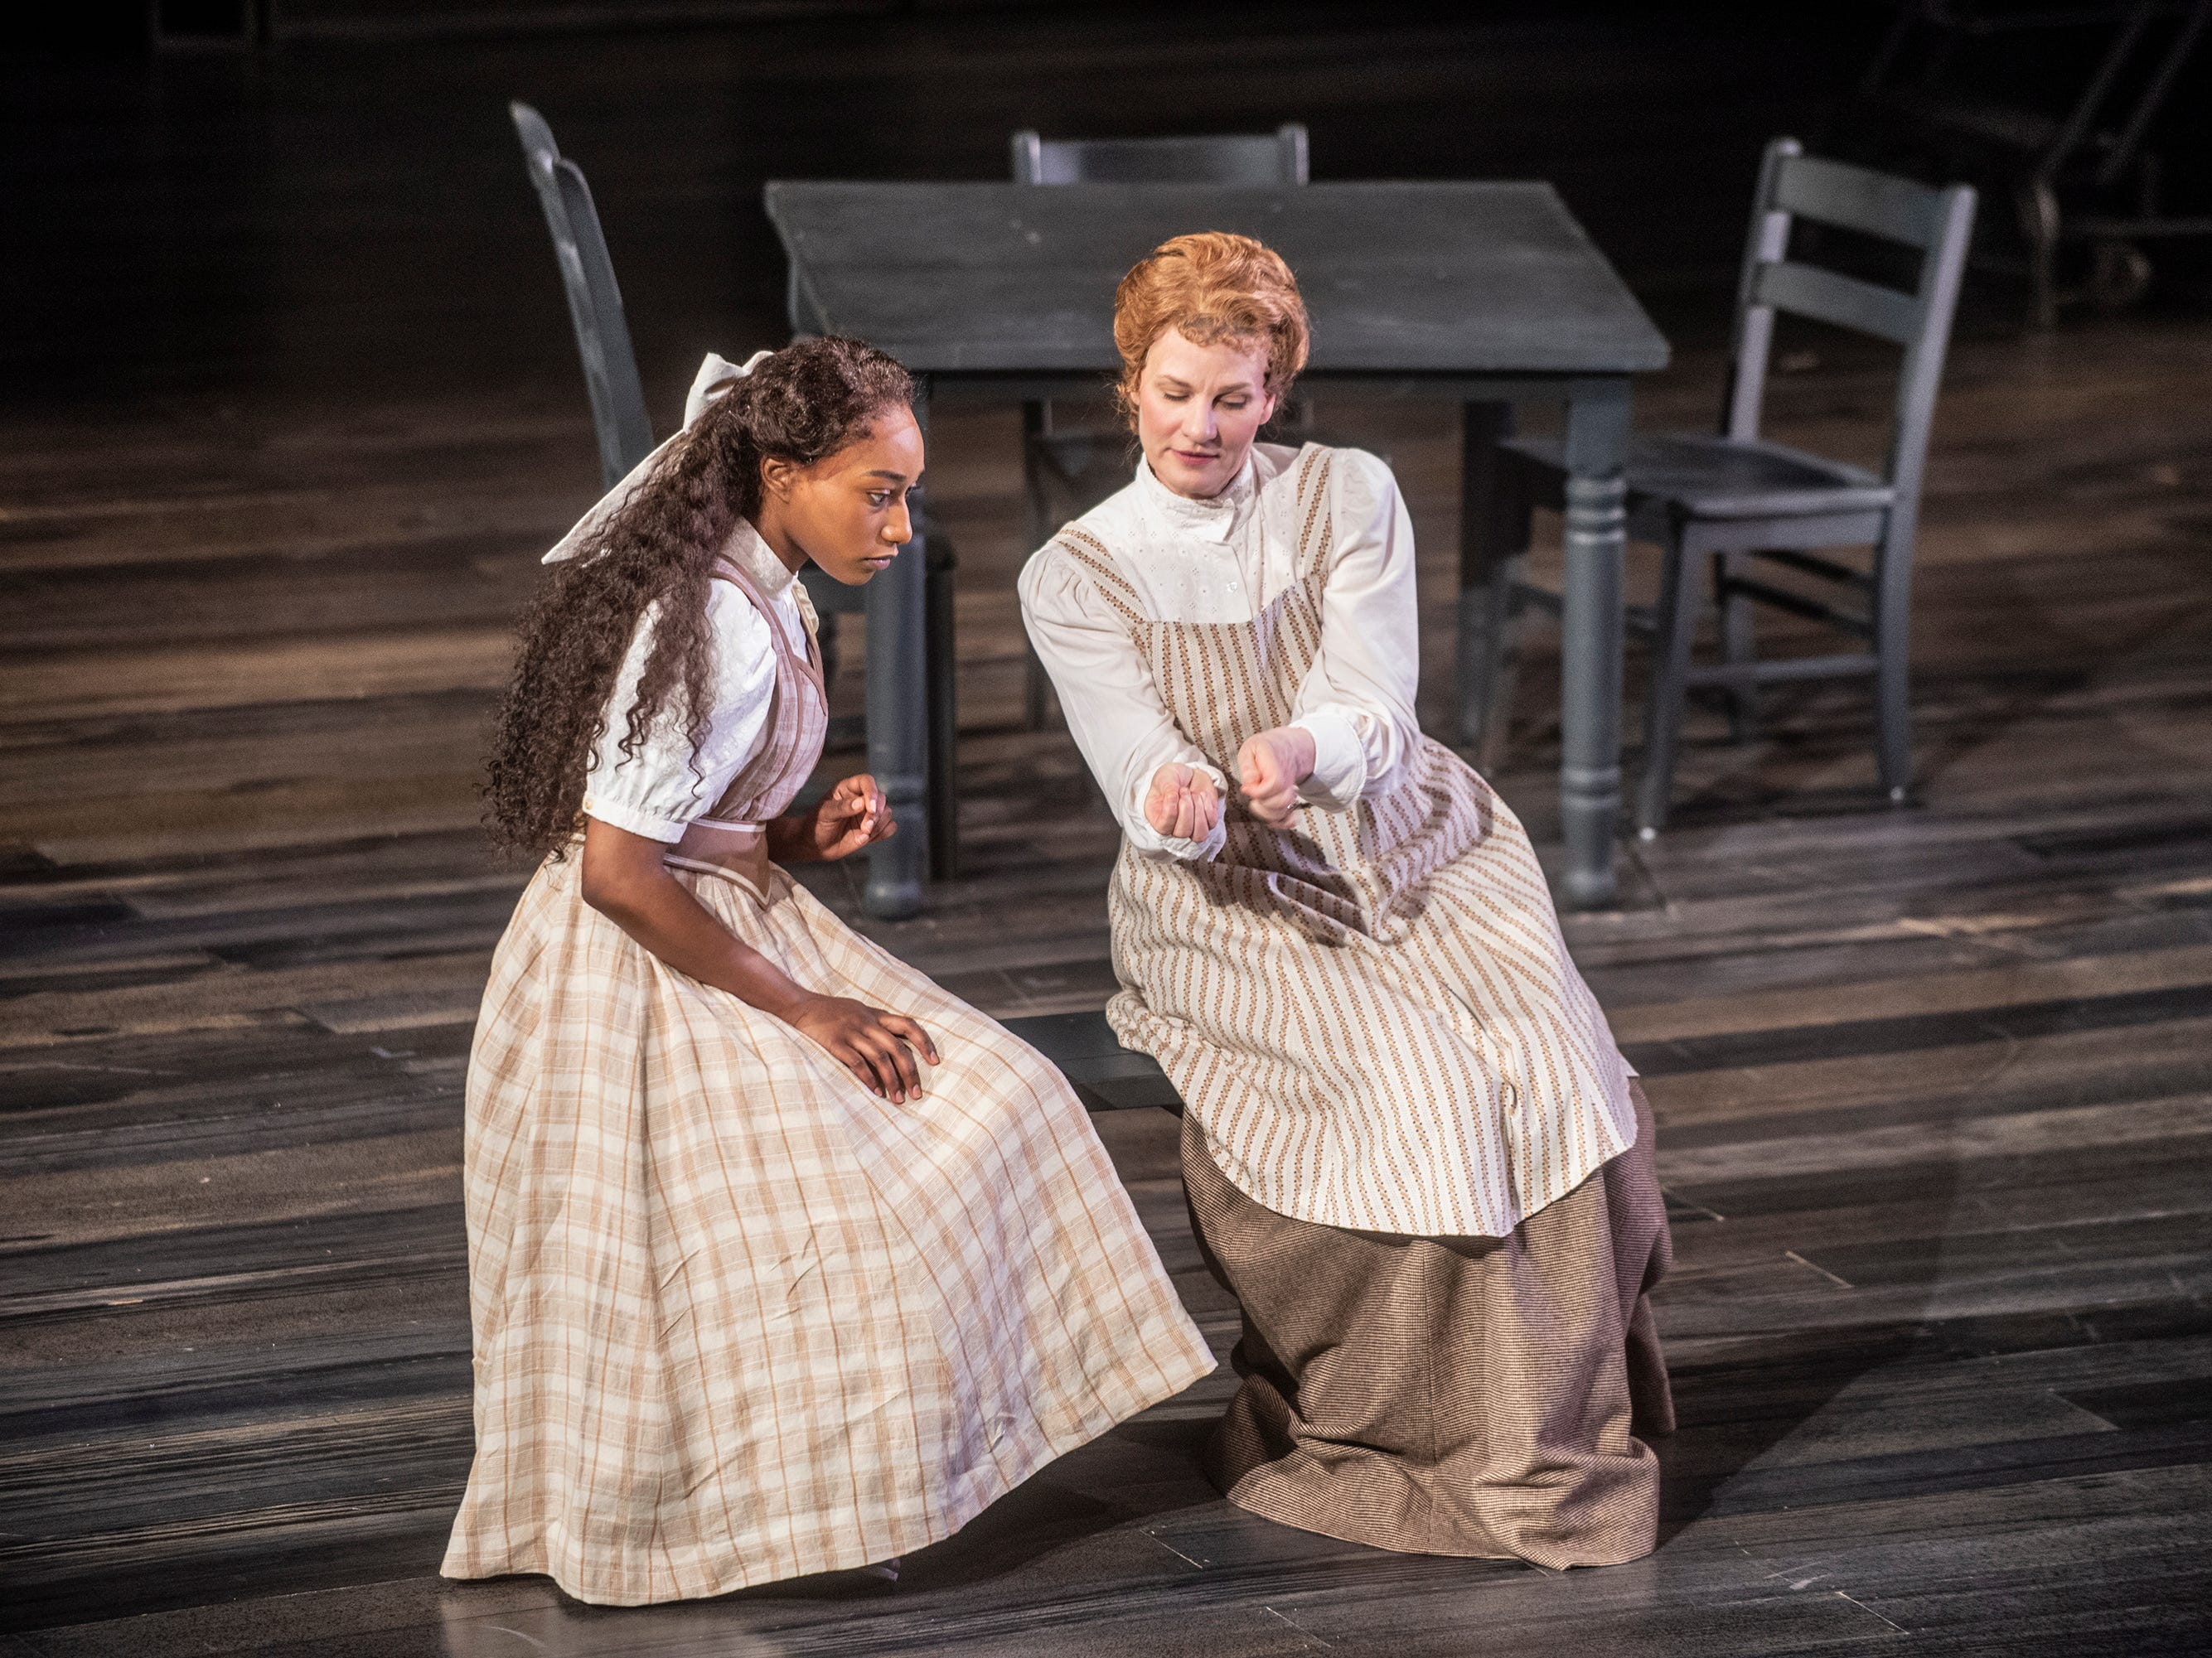 Emily Webb (Cassia Thompson) and her mother (Michelle Shupe) in Our Town. Our Town dress rehearsal Thursday, Feb. 21, 2019, at Alabama Shakespeare Festival in Montgomery, Ala.